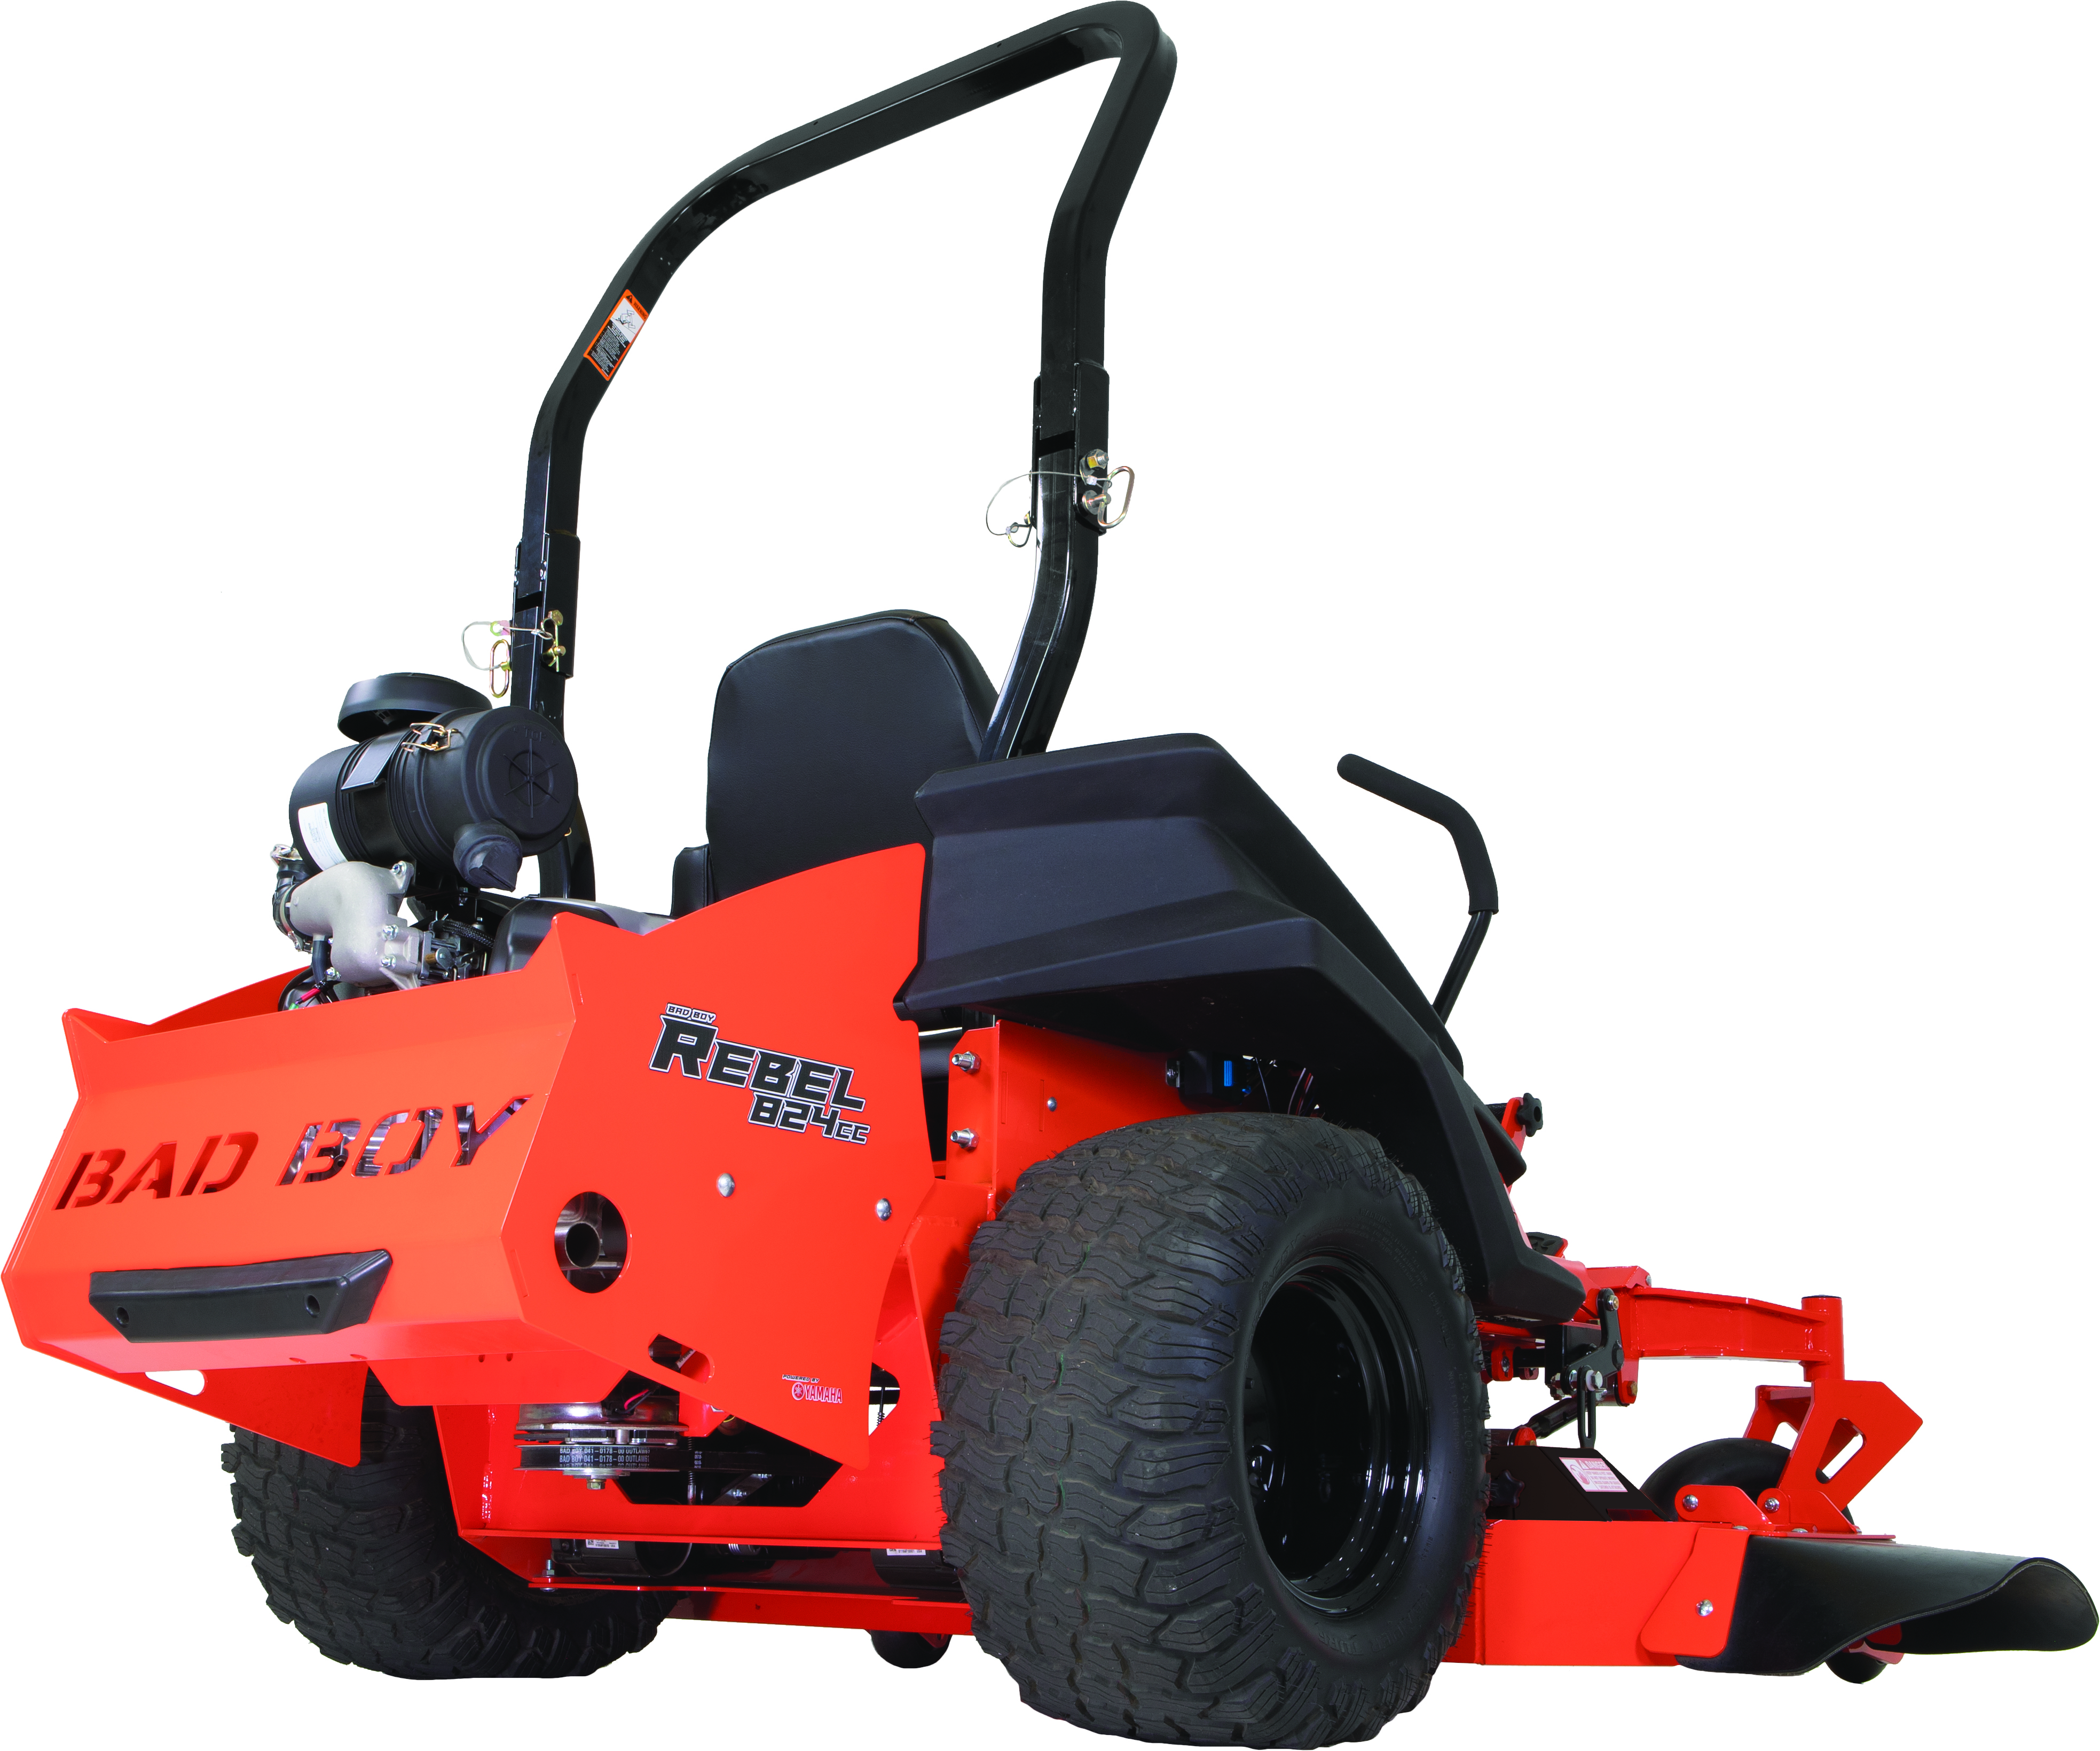 2020 Bad Boy OUTLAW REBEL 7200 Lawn and Garden